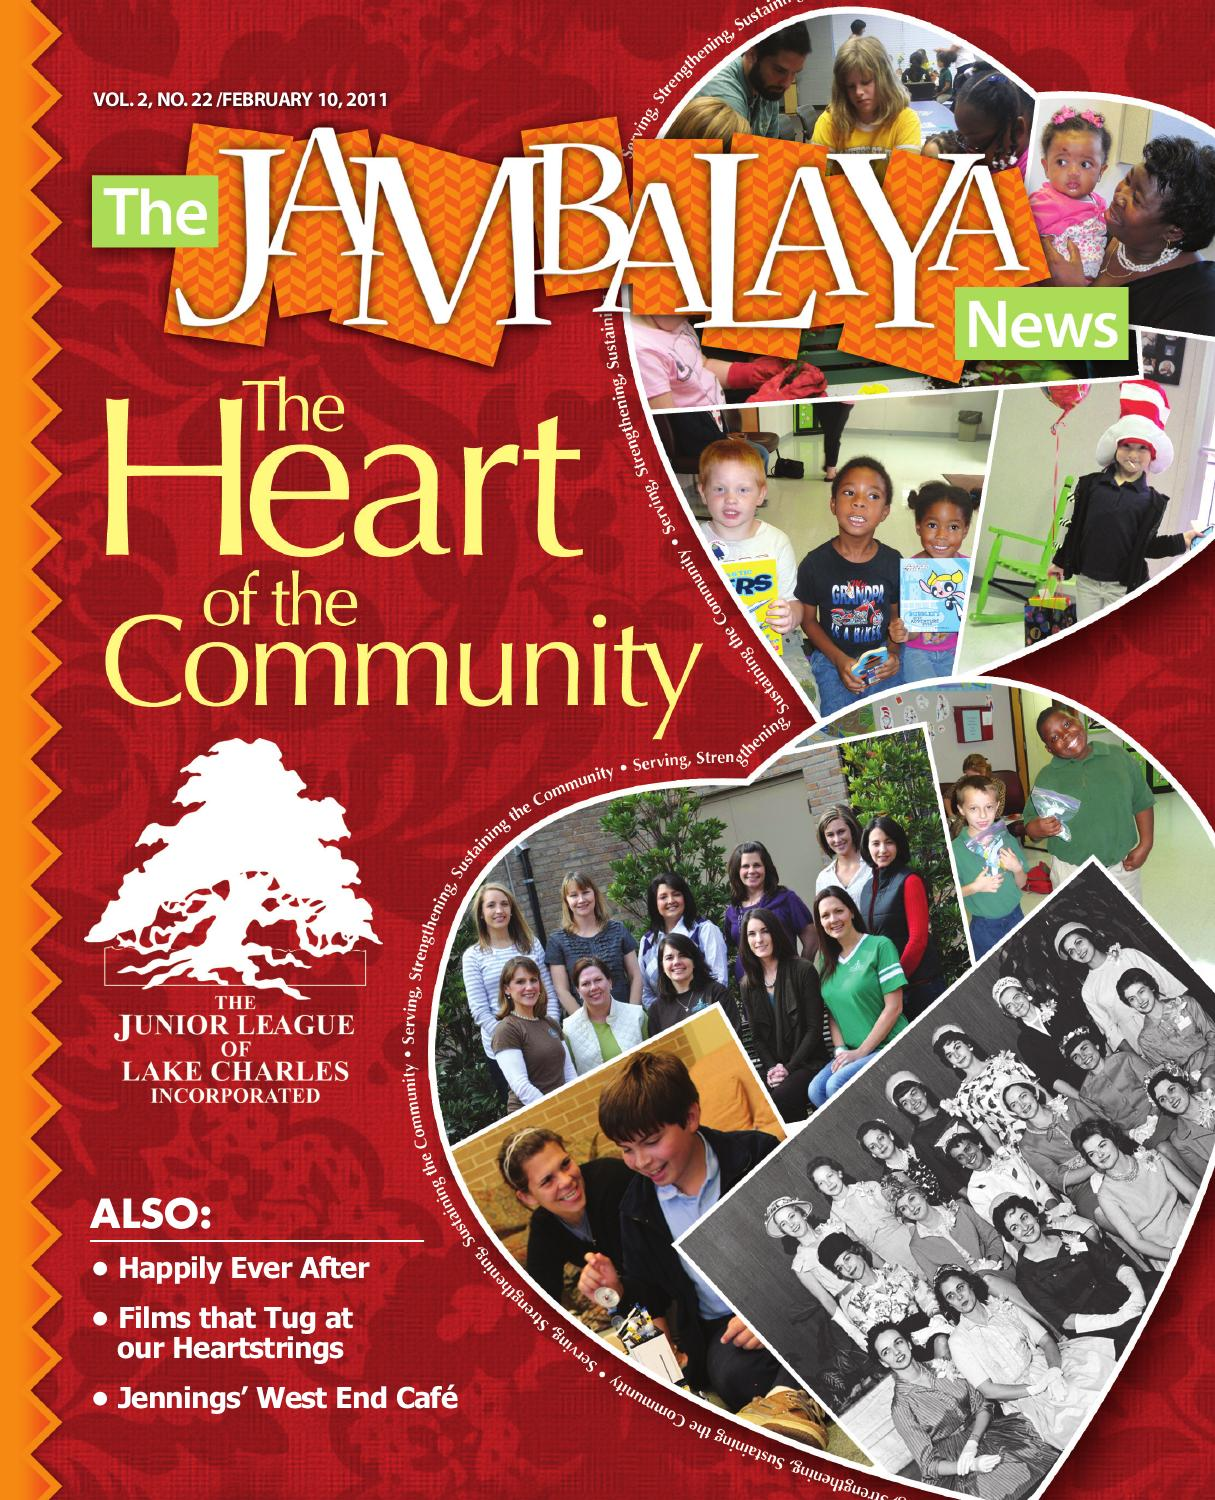 The Jambalaya News - Vol. 2 No. 22 by The Jambalaya News - issuu